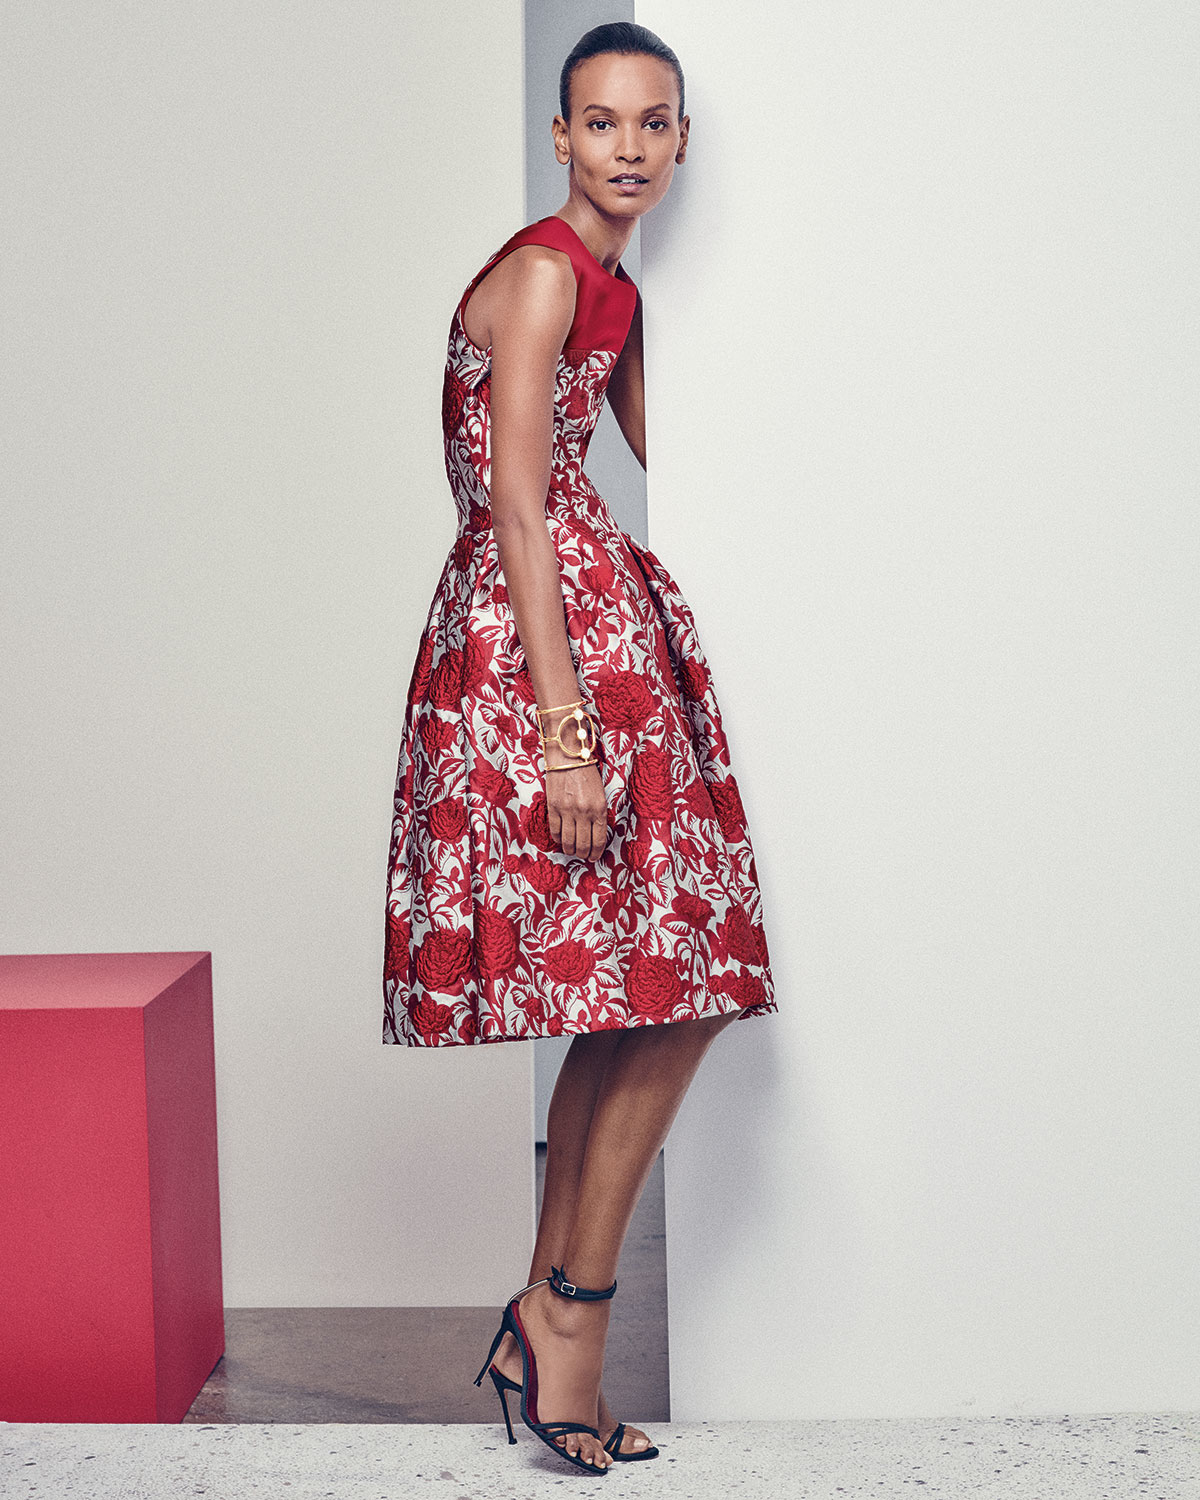 Lyst - Carolina Herrera Fit-&-flare Rose-print Cocktail Dress in Red